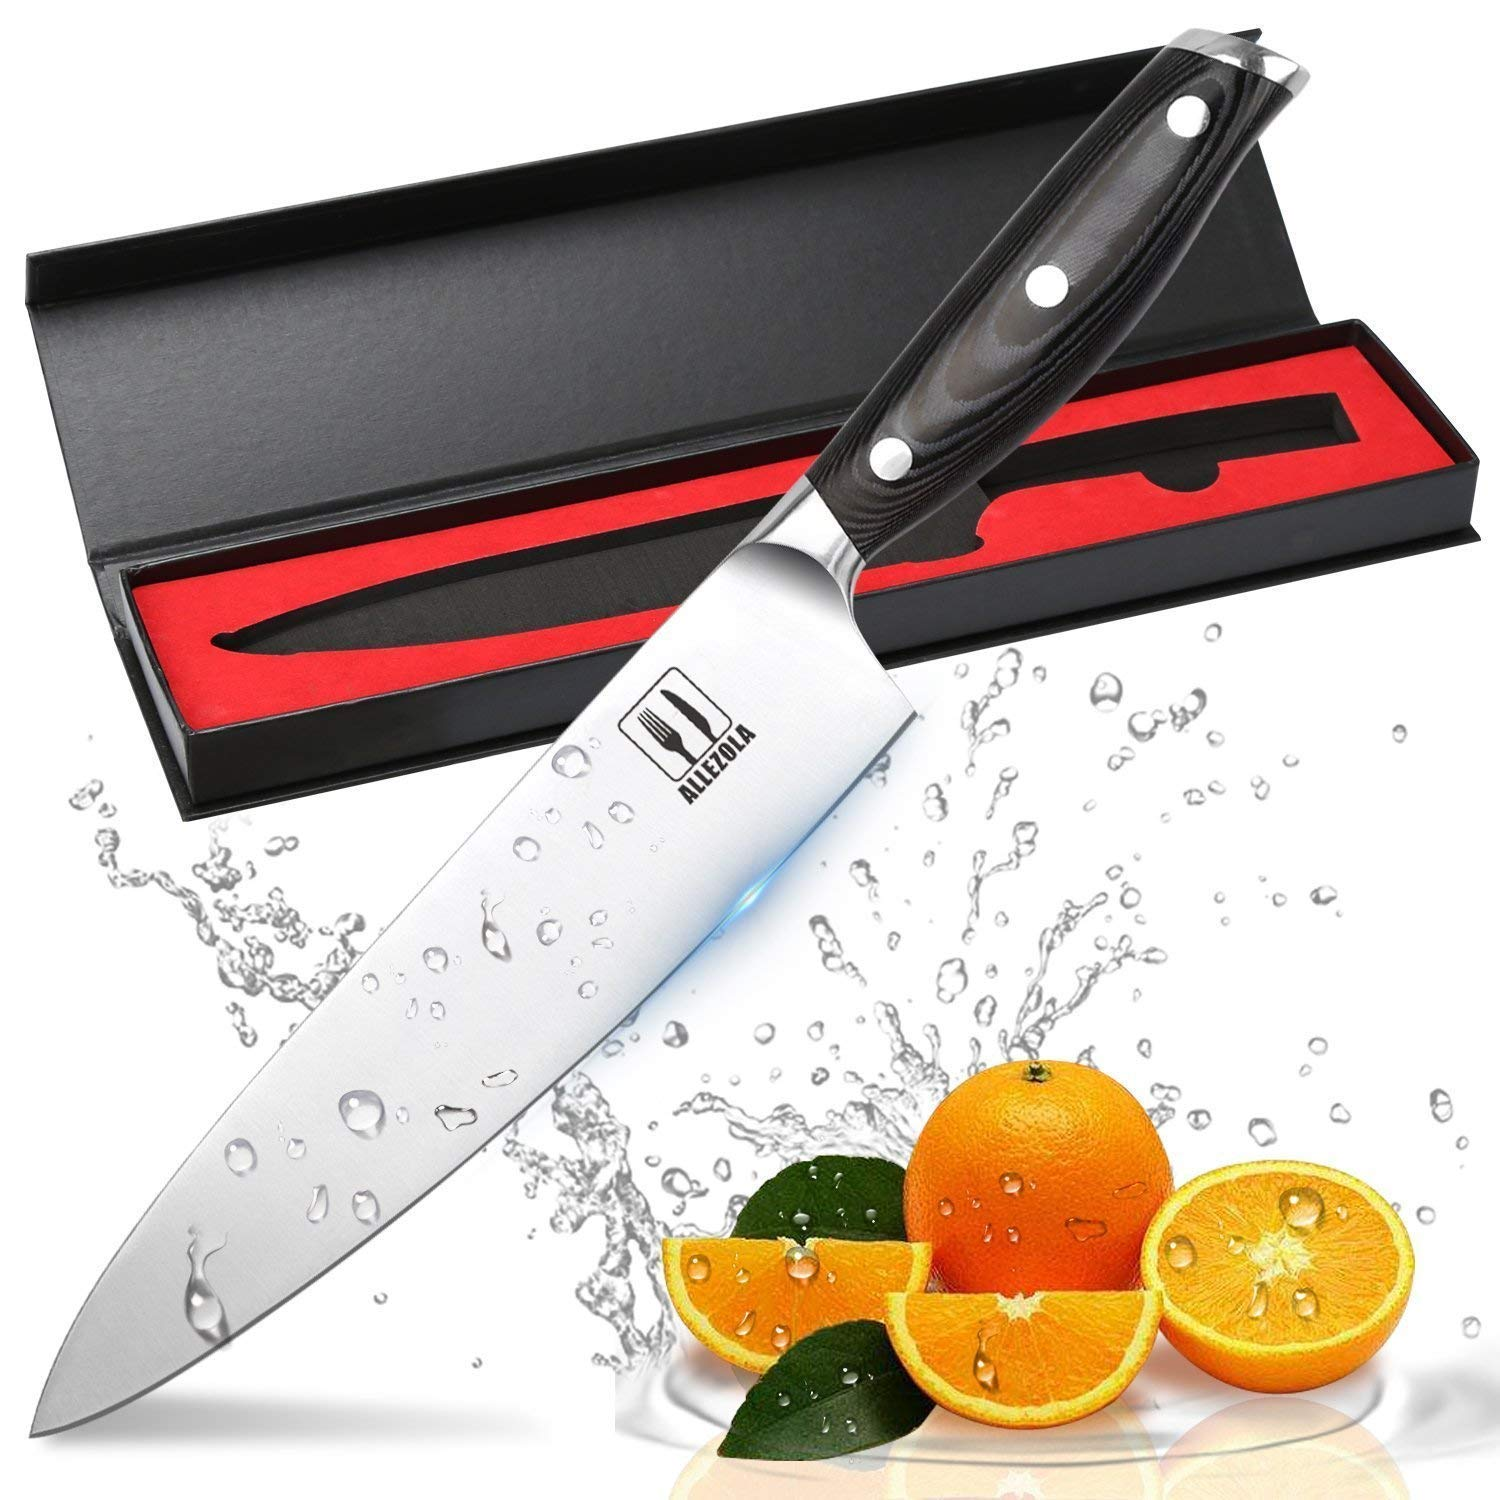 Professional Chef Knife Kitchen Knives 7.5 Inch Grilldom Professional 7.5 Inch German High Carbon Stainless Steel with Ergonomic Handle, Cooking knife for Home and Restaurant by Grilldom